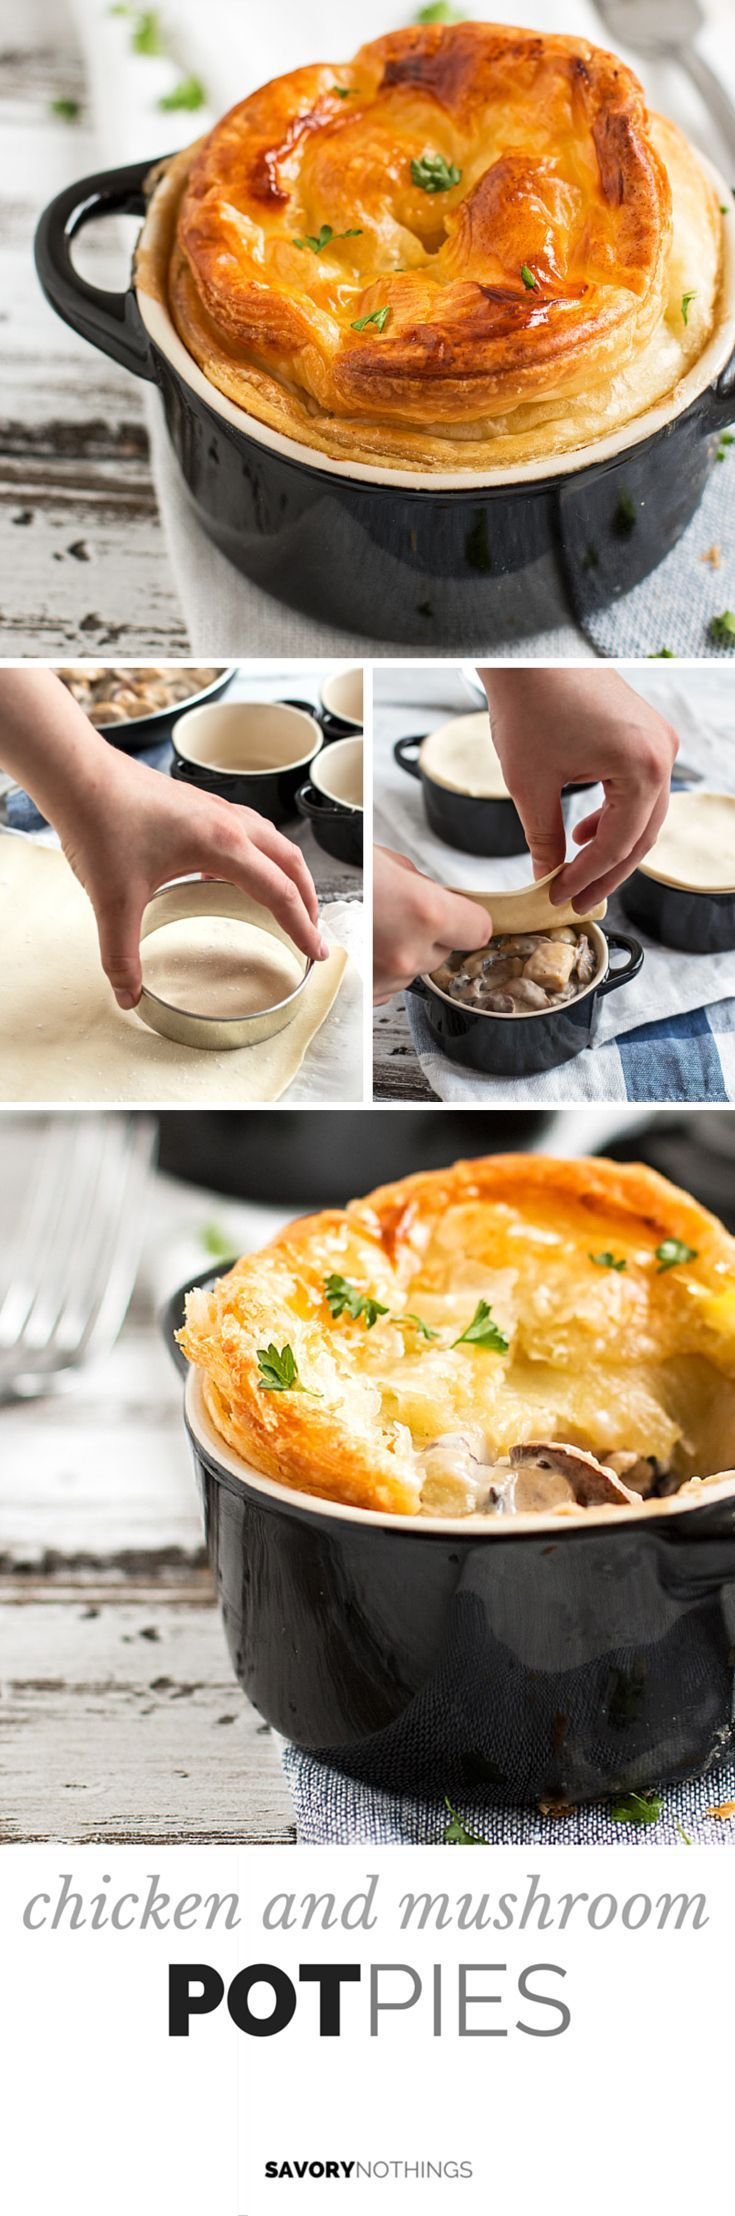 Chicken and Mushroom Pot Pies Recipe - This is a classic British comfort food!